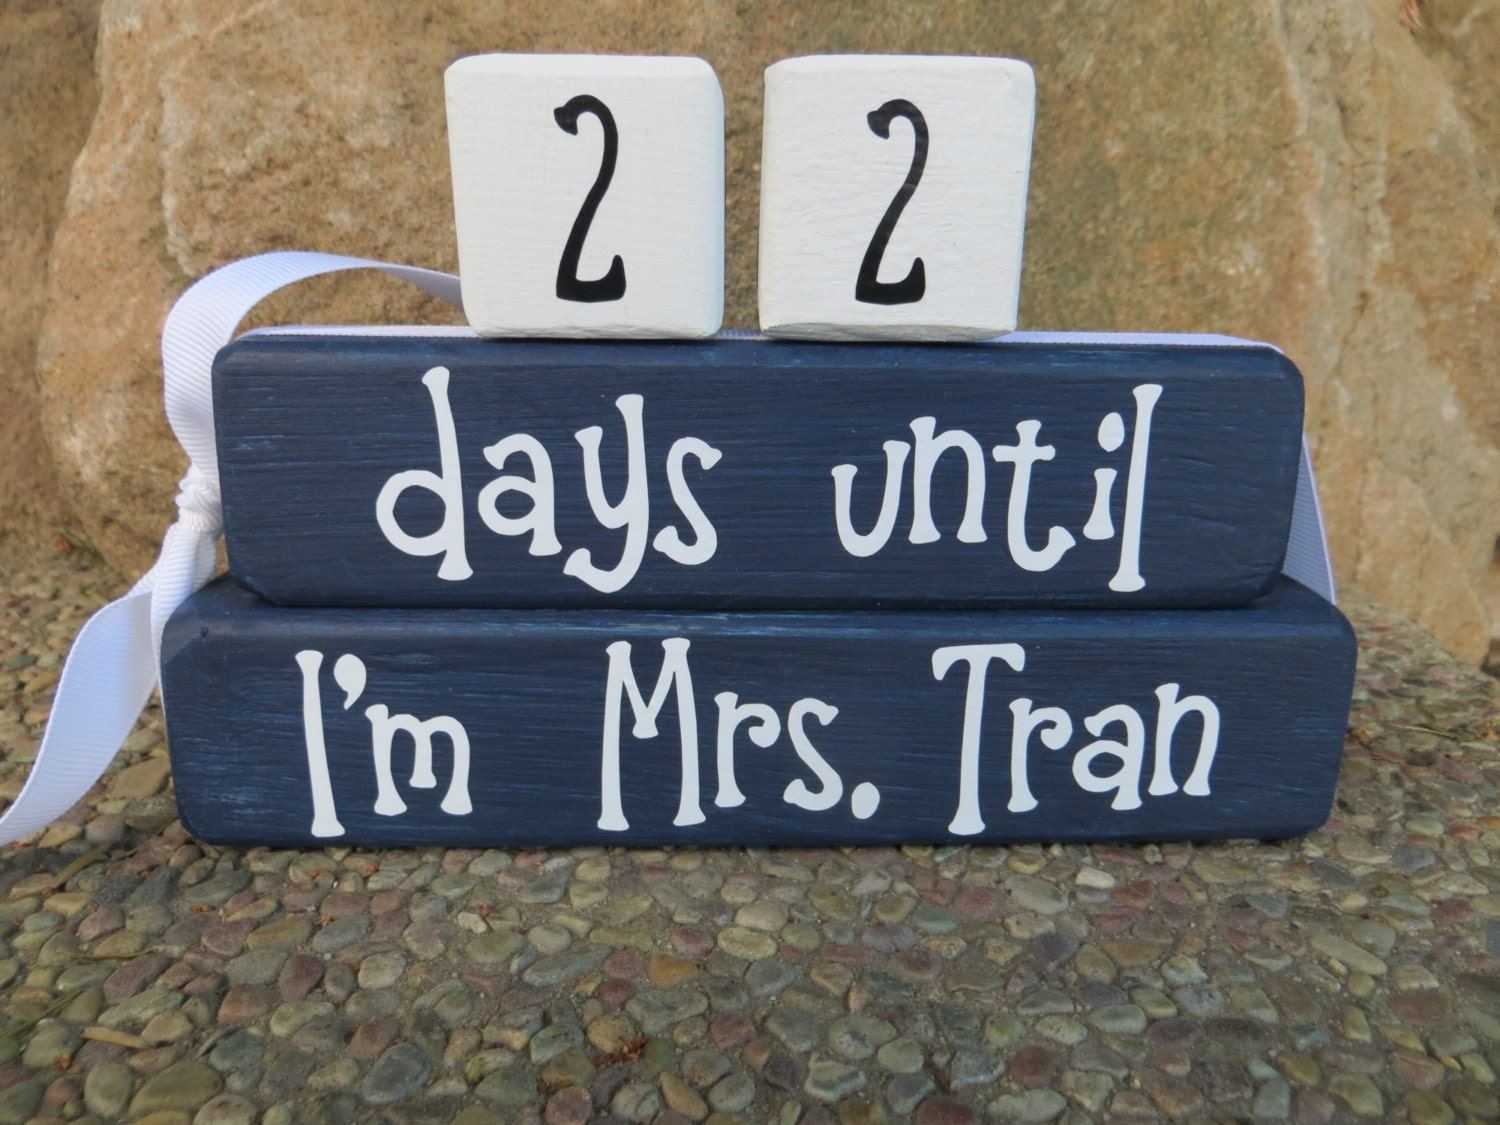 Wedding Countdown Blocks Bride to be Shower Gift Mr & Mrs